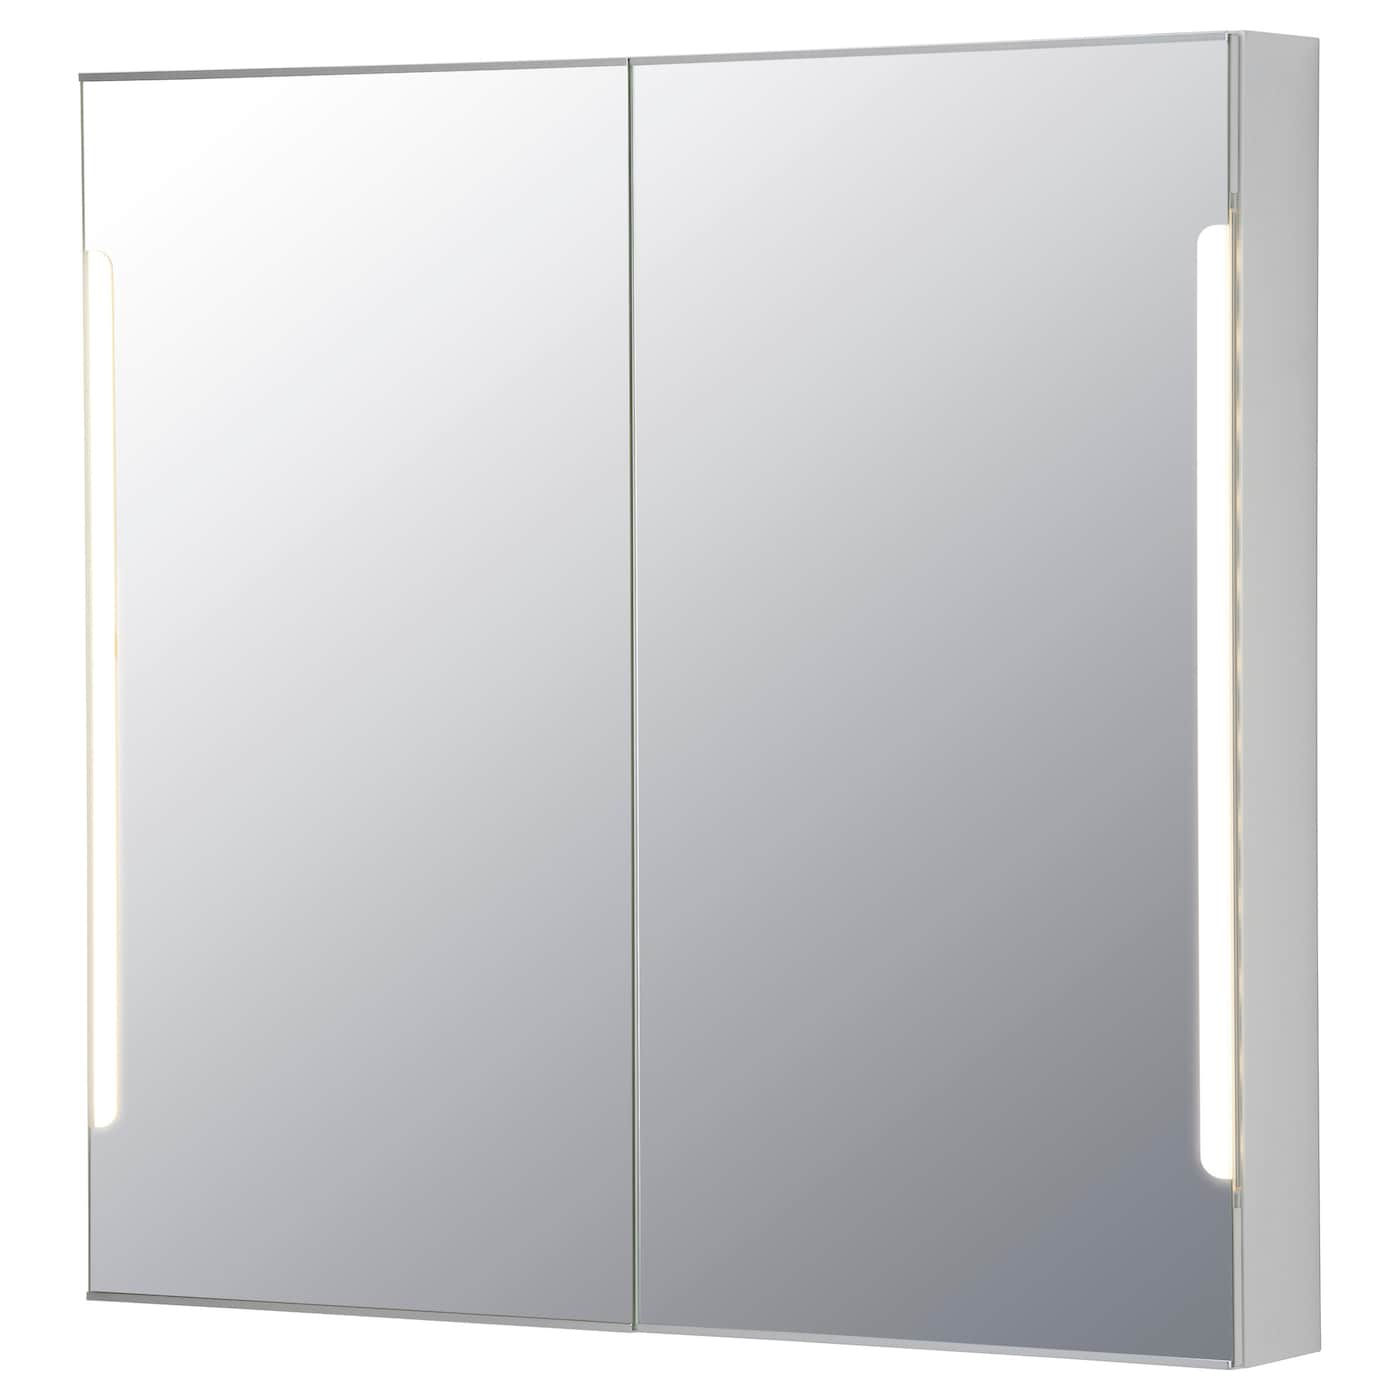 Bathroom wall cabinets ikea ikea storjorm mirror cab 2 doorbuilt in lighting aloadofball Gallery